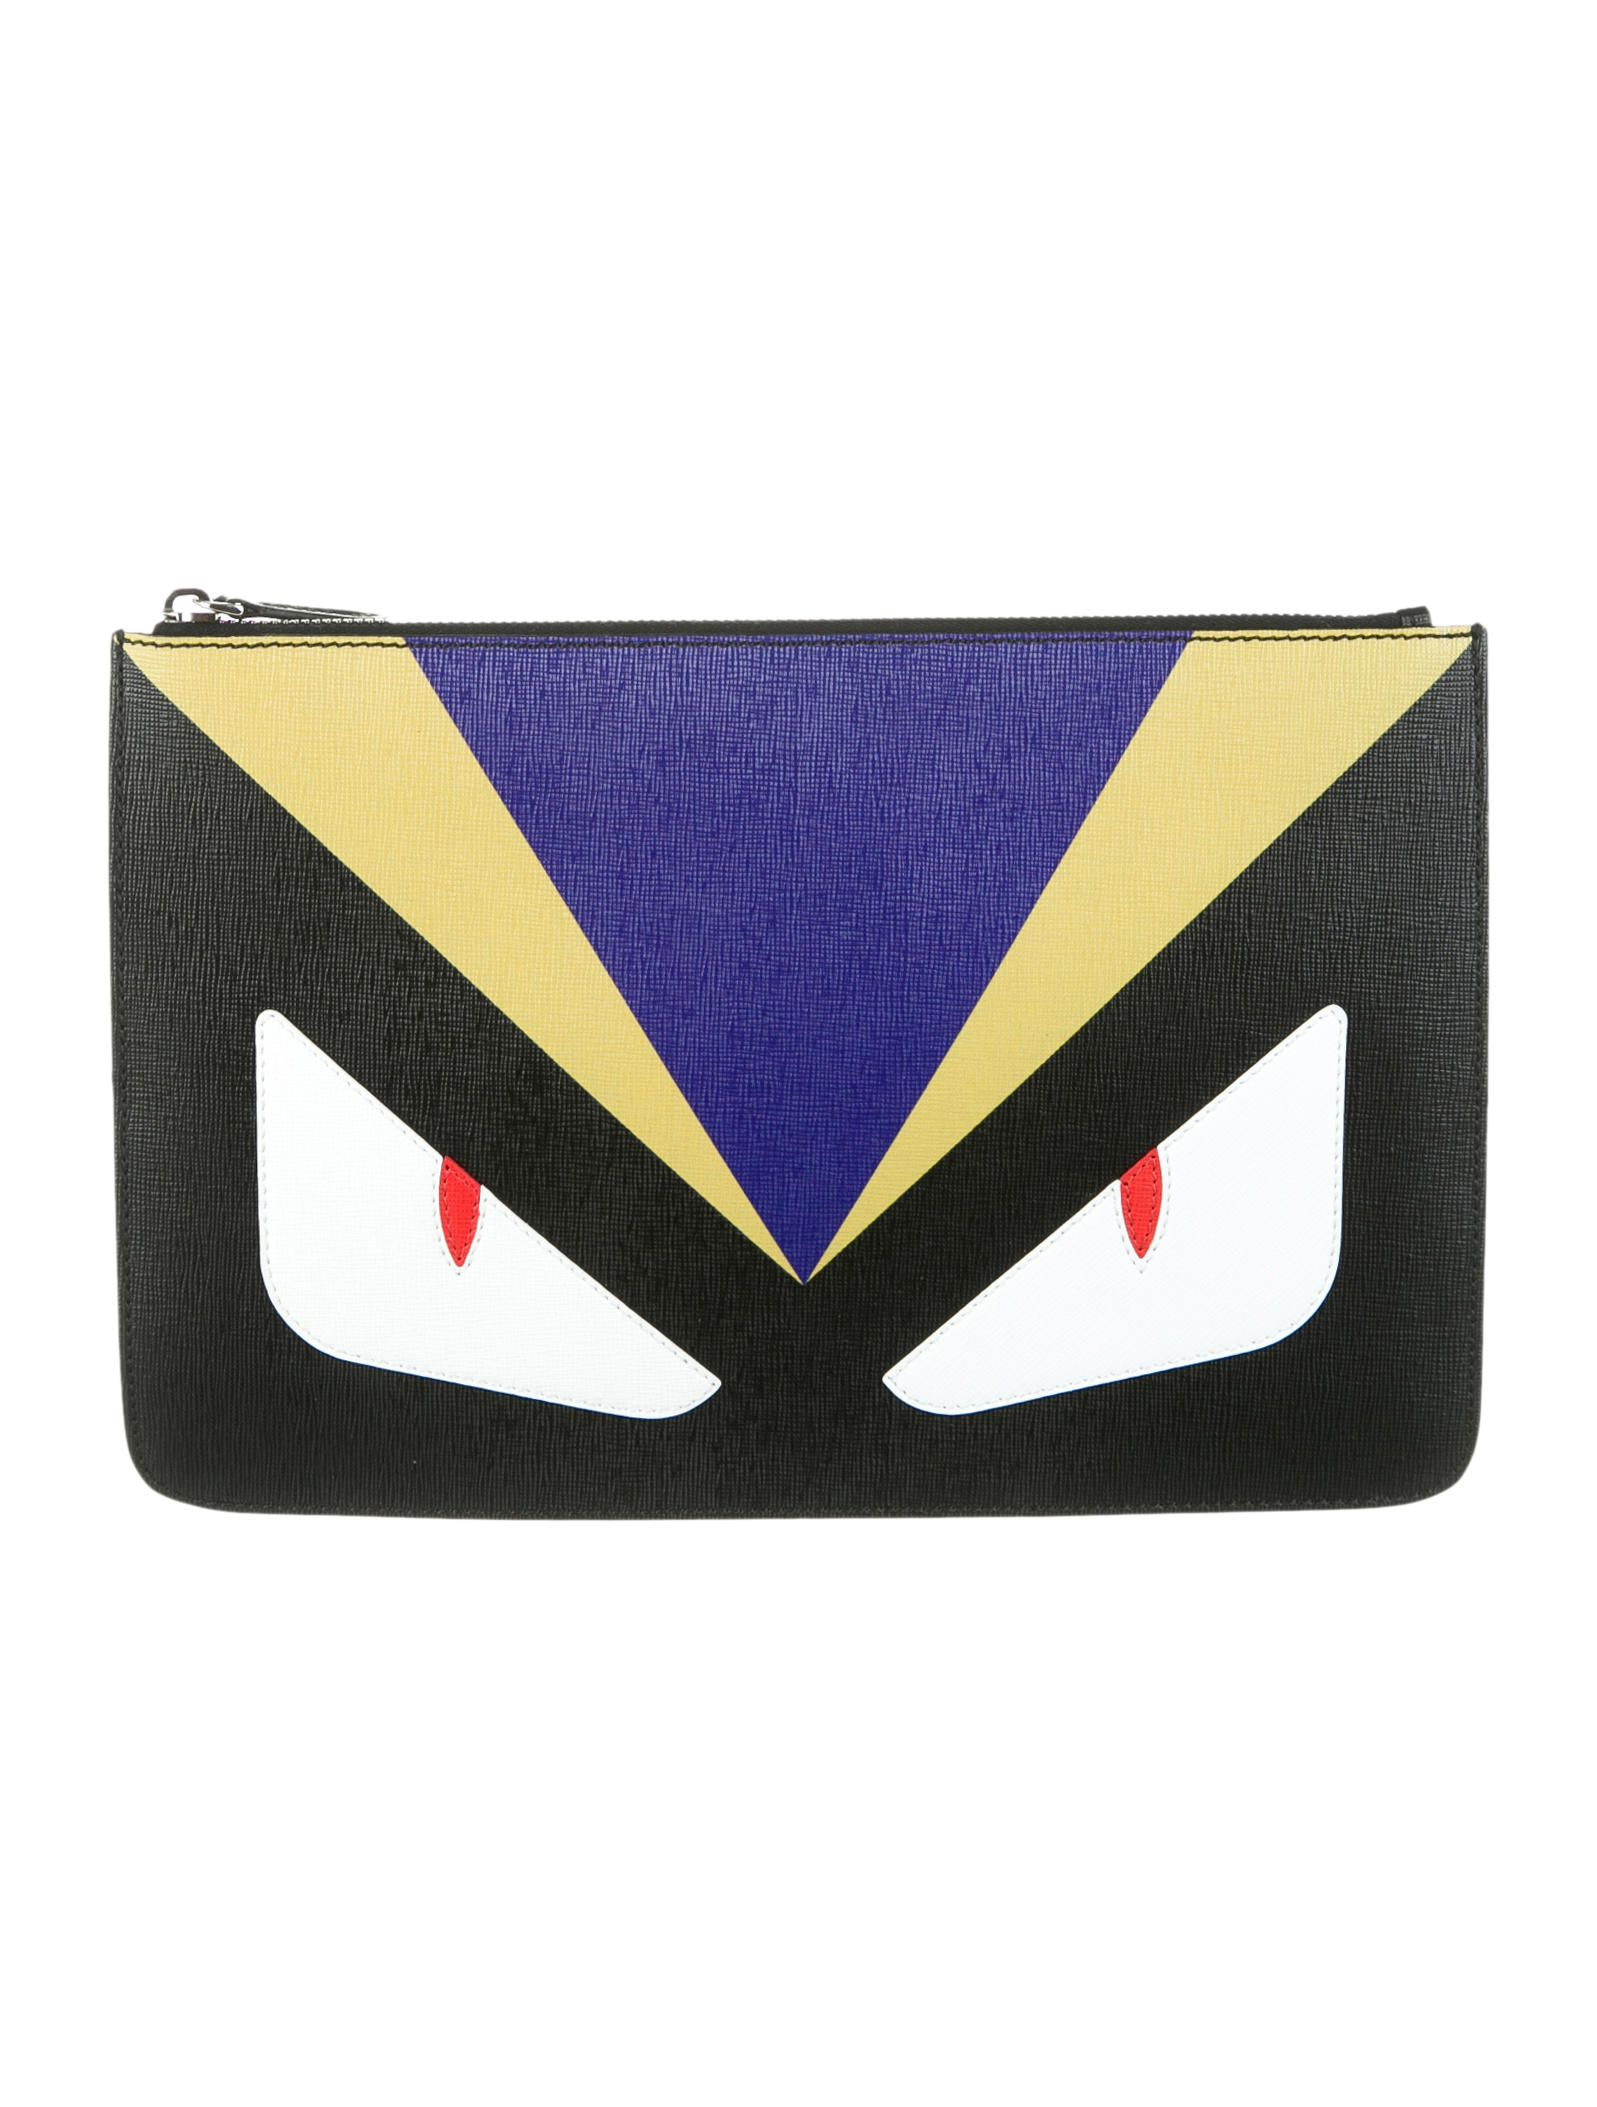 156850efc241 Black and multicolor saffiano leather Fendi Monster Eyes clutch with  silver-tone hardware